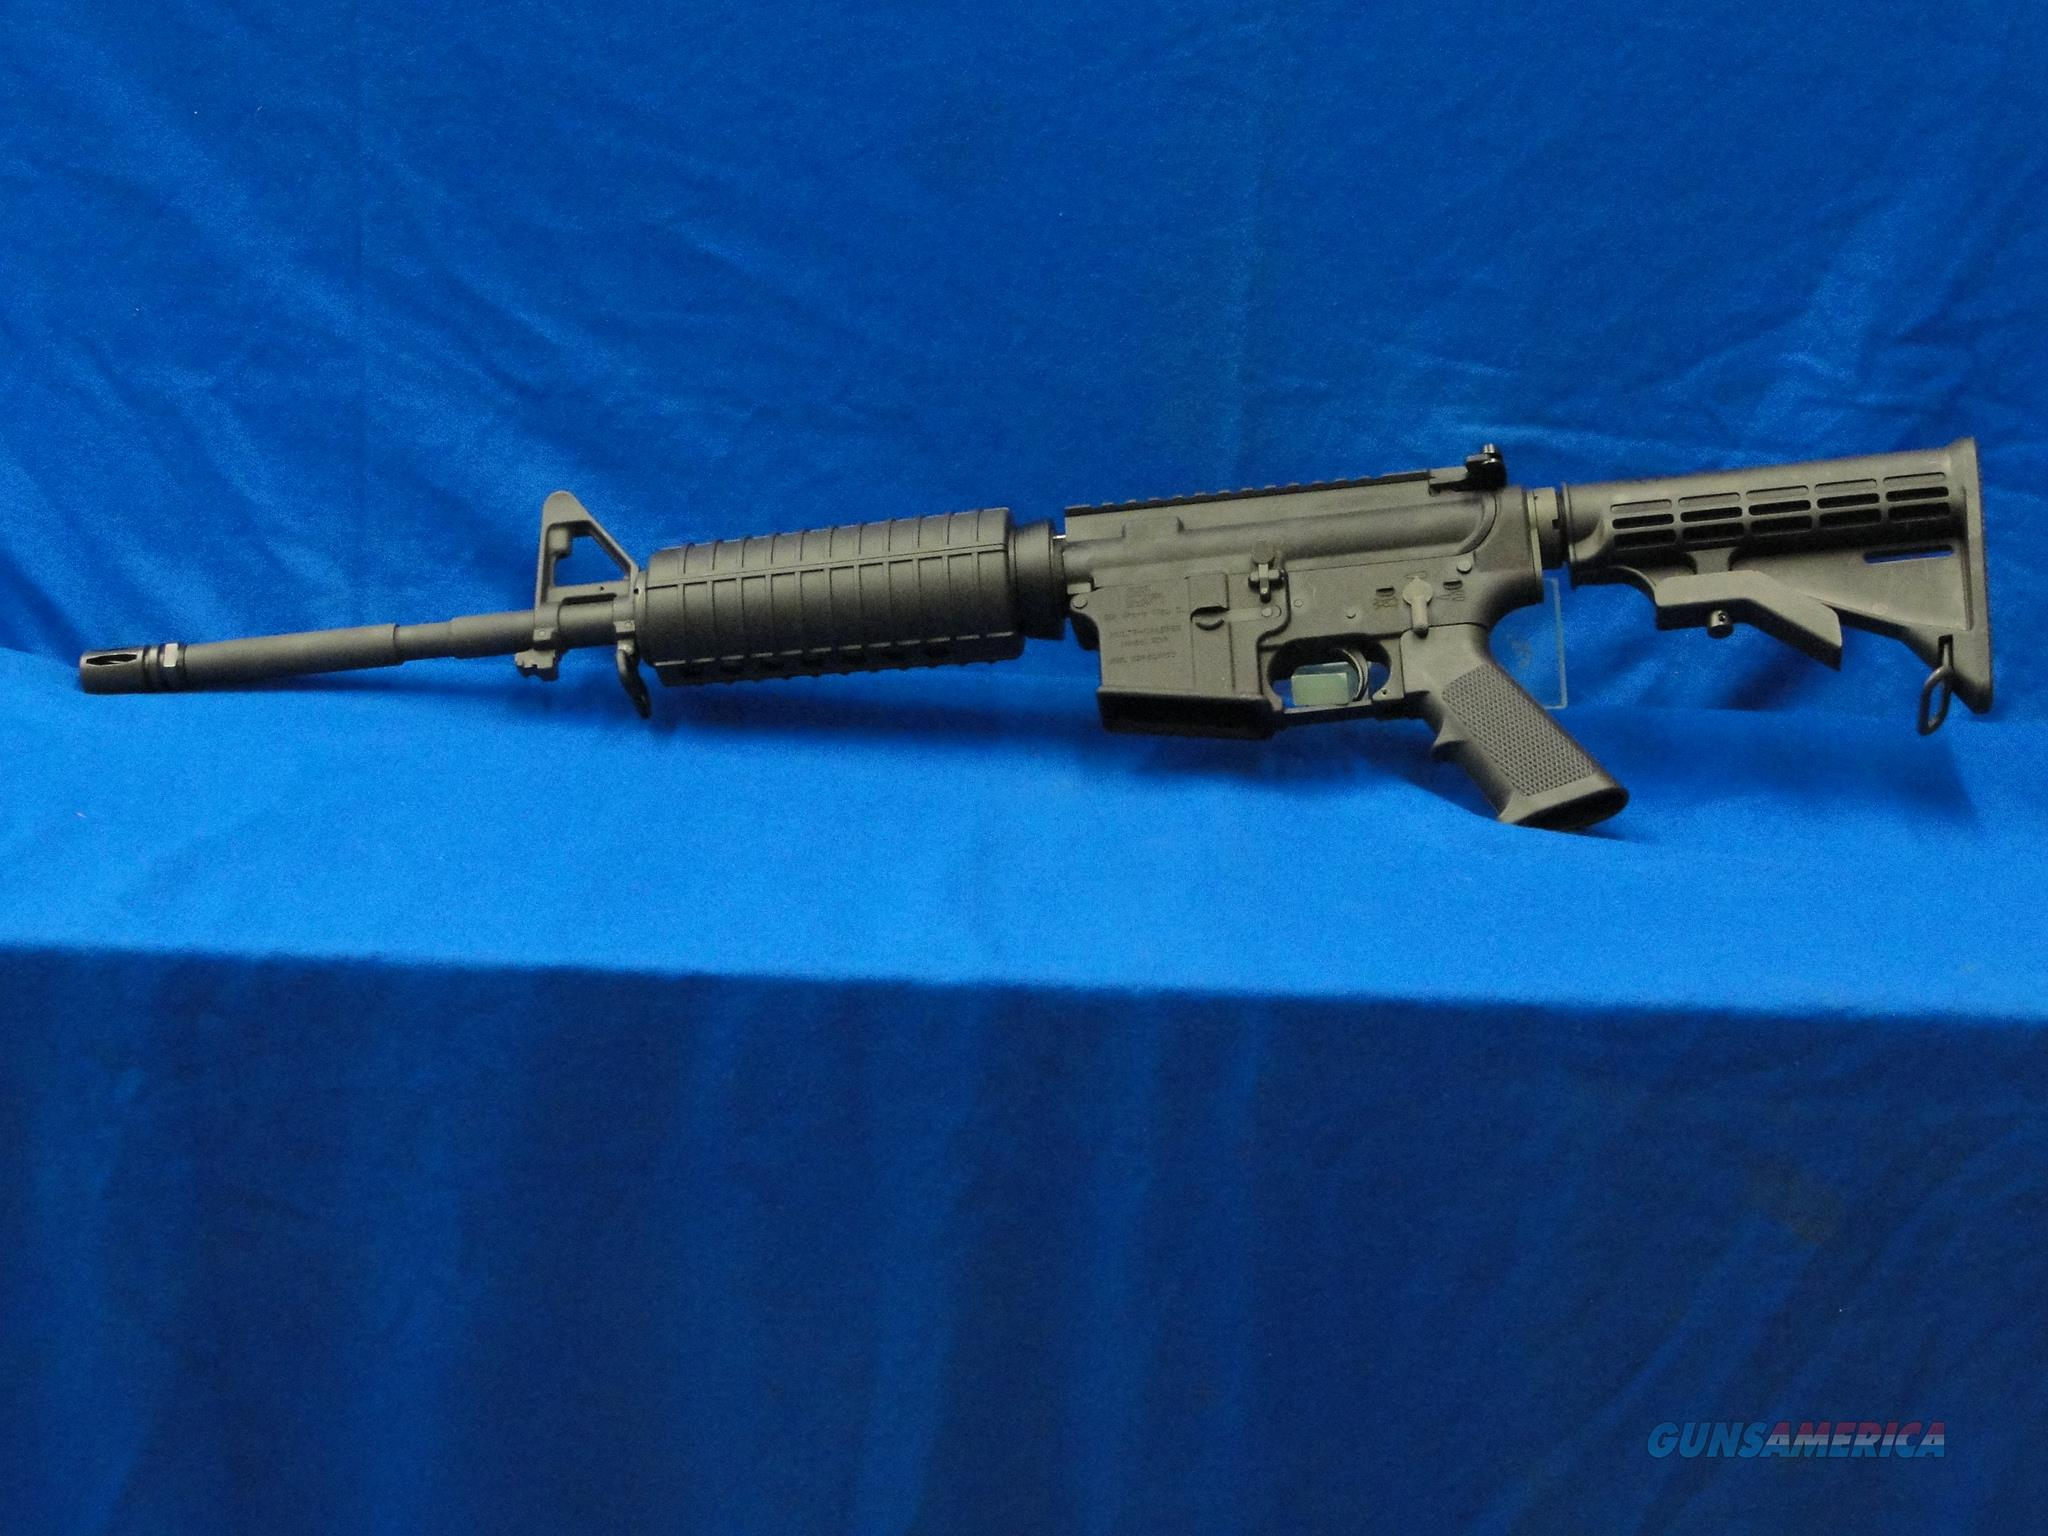 Cogan Custom DS Arms AR-15  Guns > Rifles > DSA Rifles (DS Arms) > AR-15 type